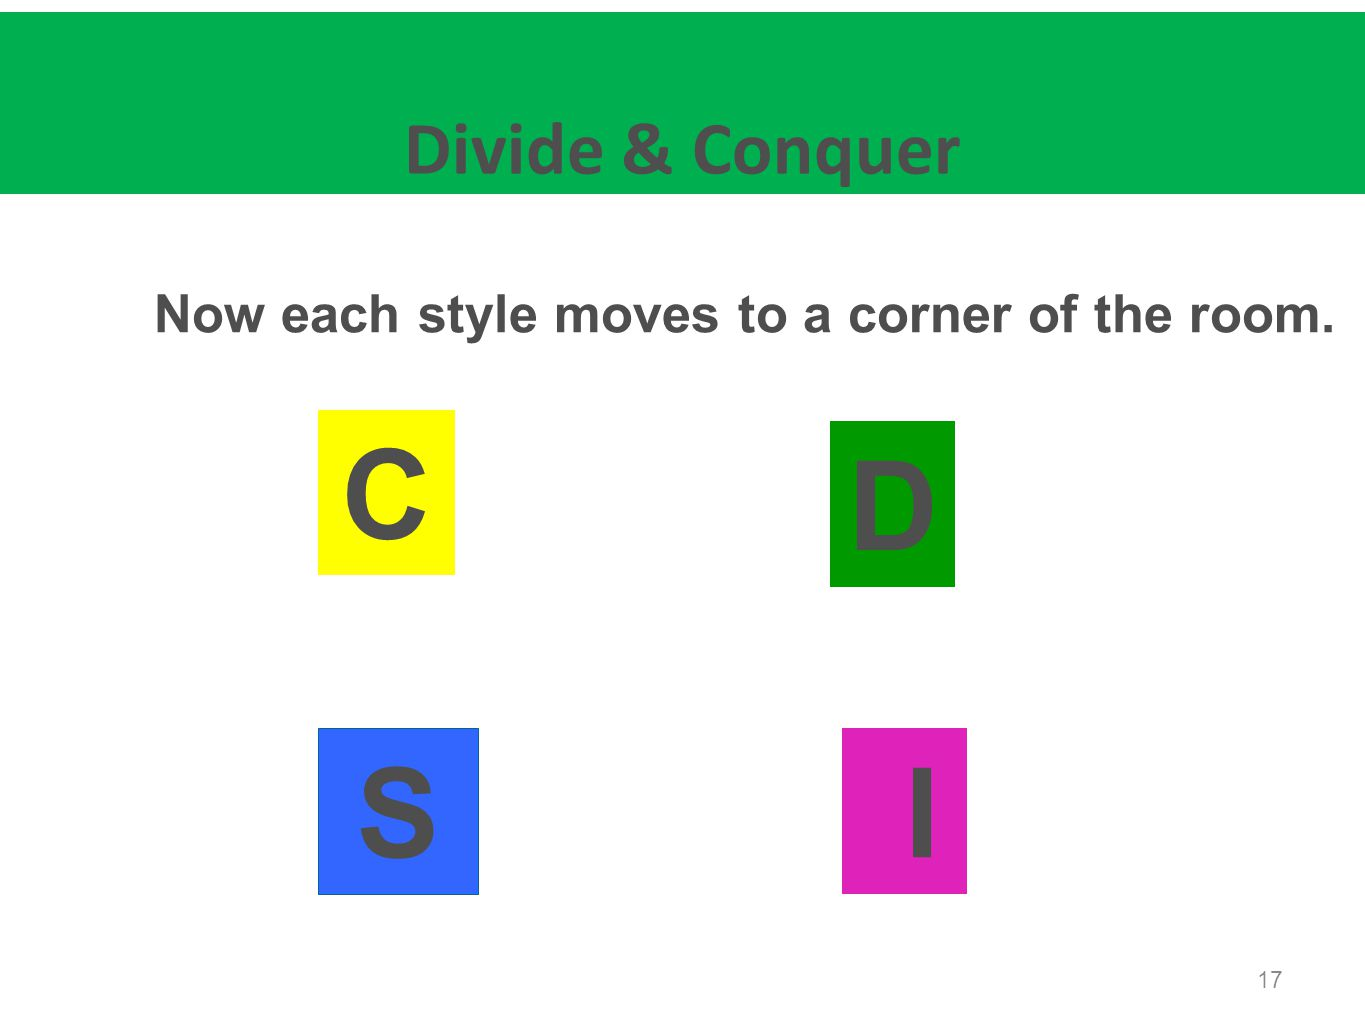 Now each style moves to a corner of the room.